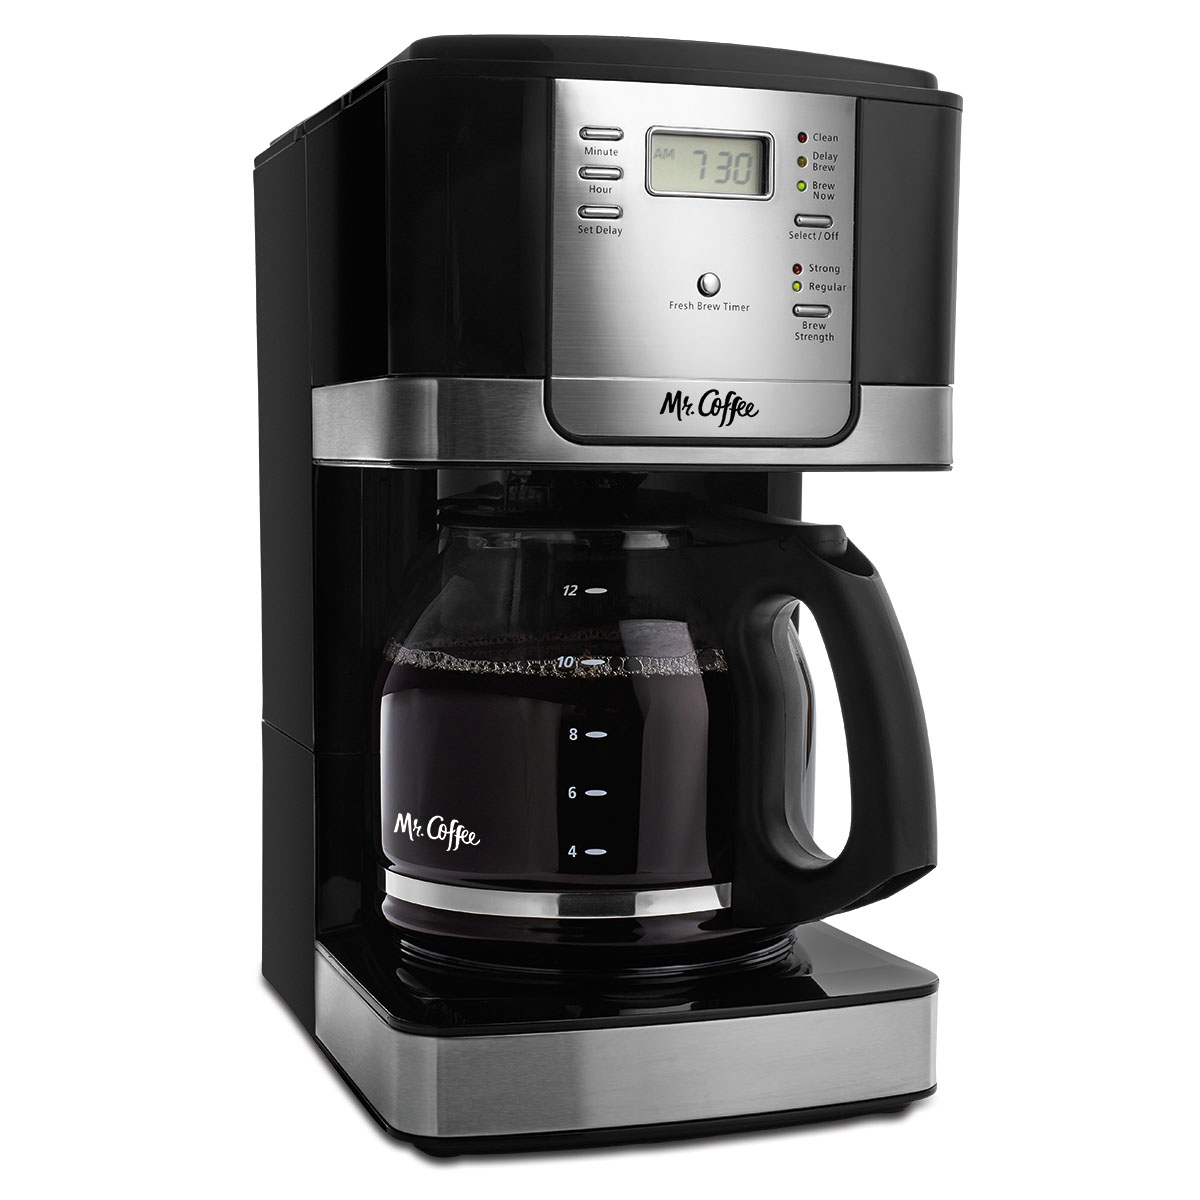 Mr Coffee Advanced Brew 12 Cup Programmable Maker Black Stainless Steel Accents JWX27 RB